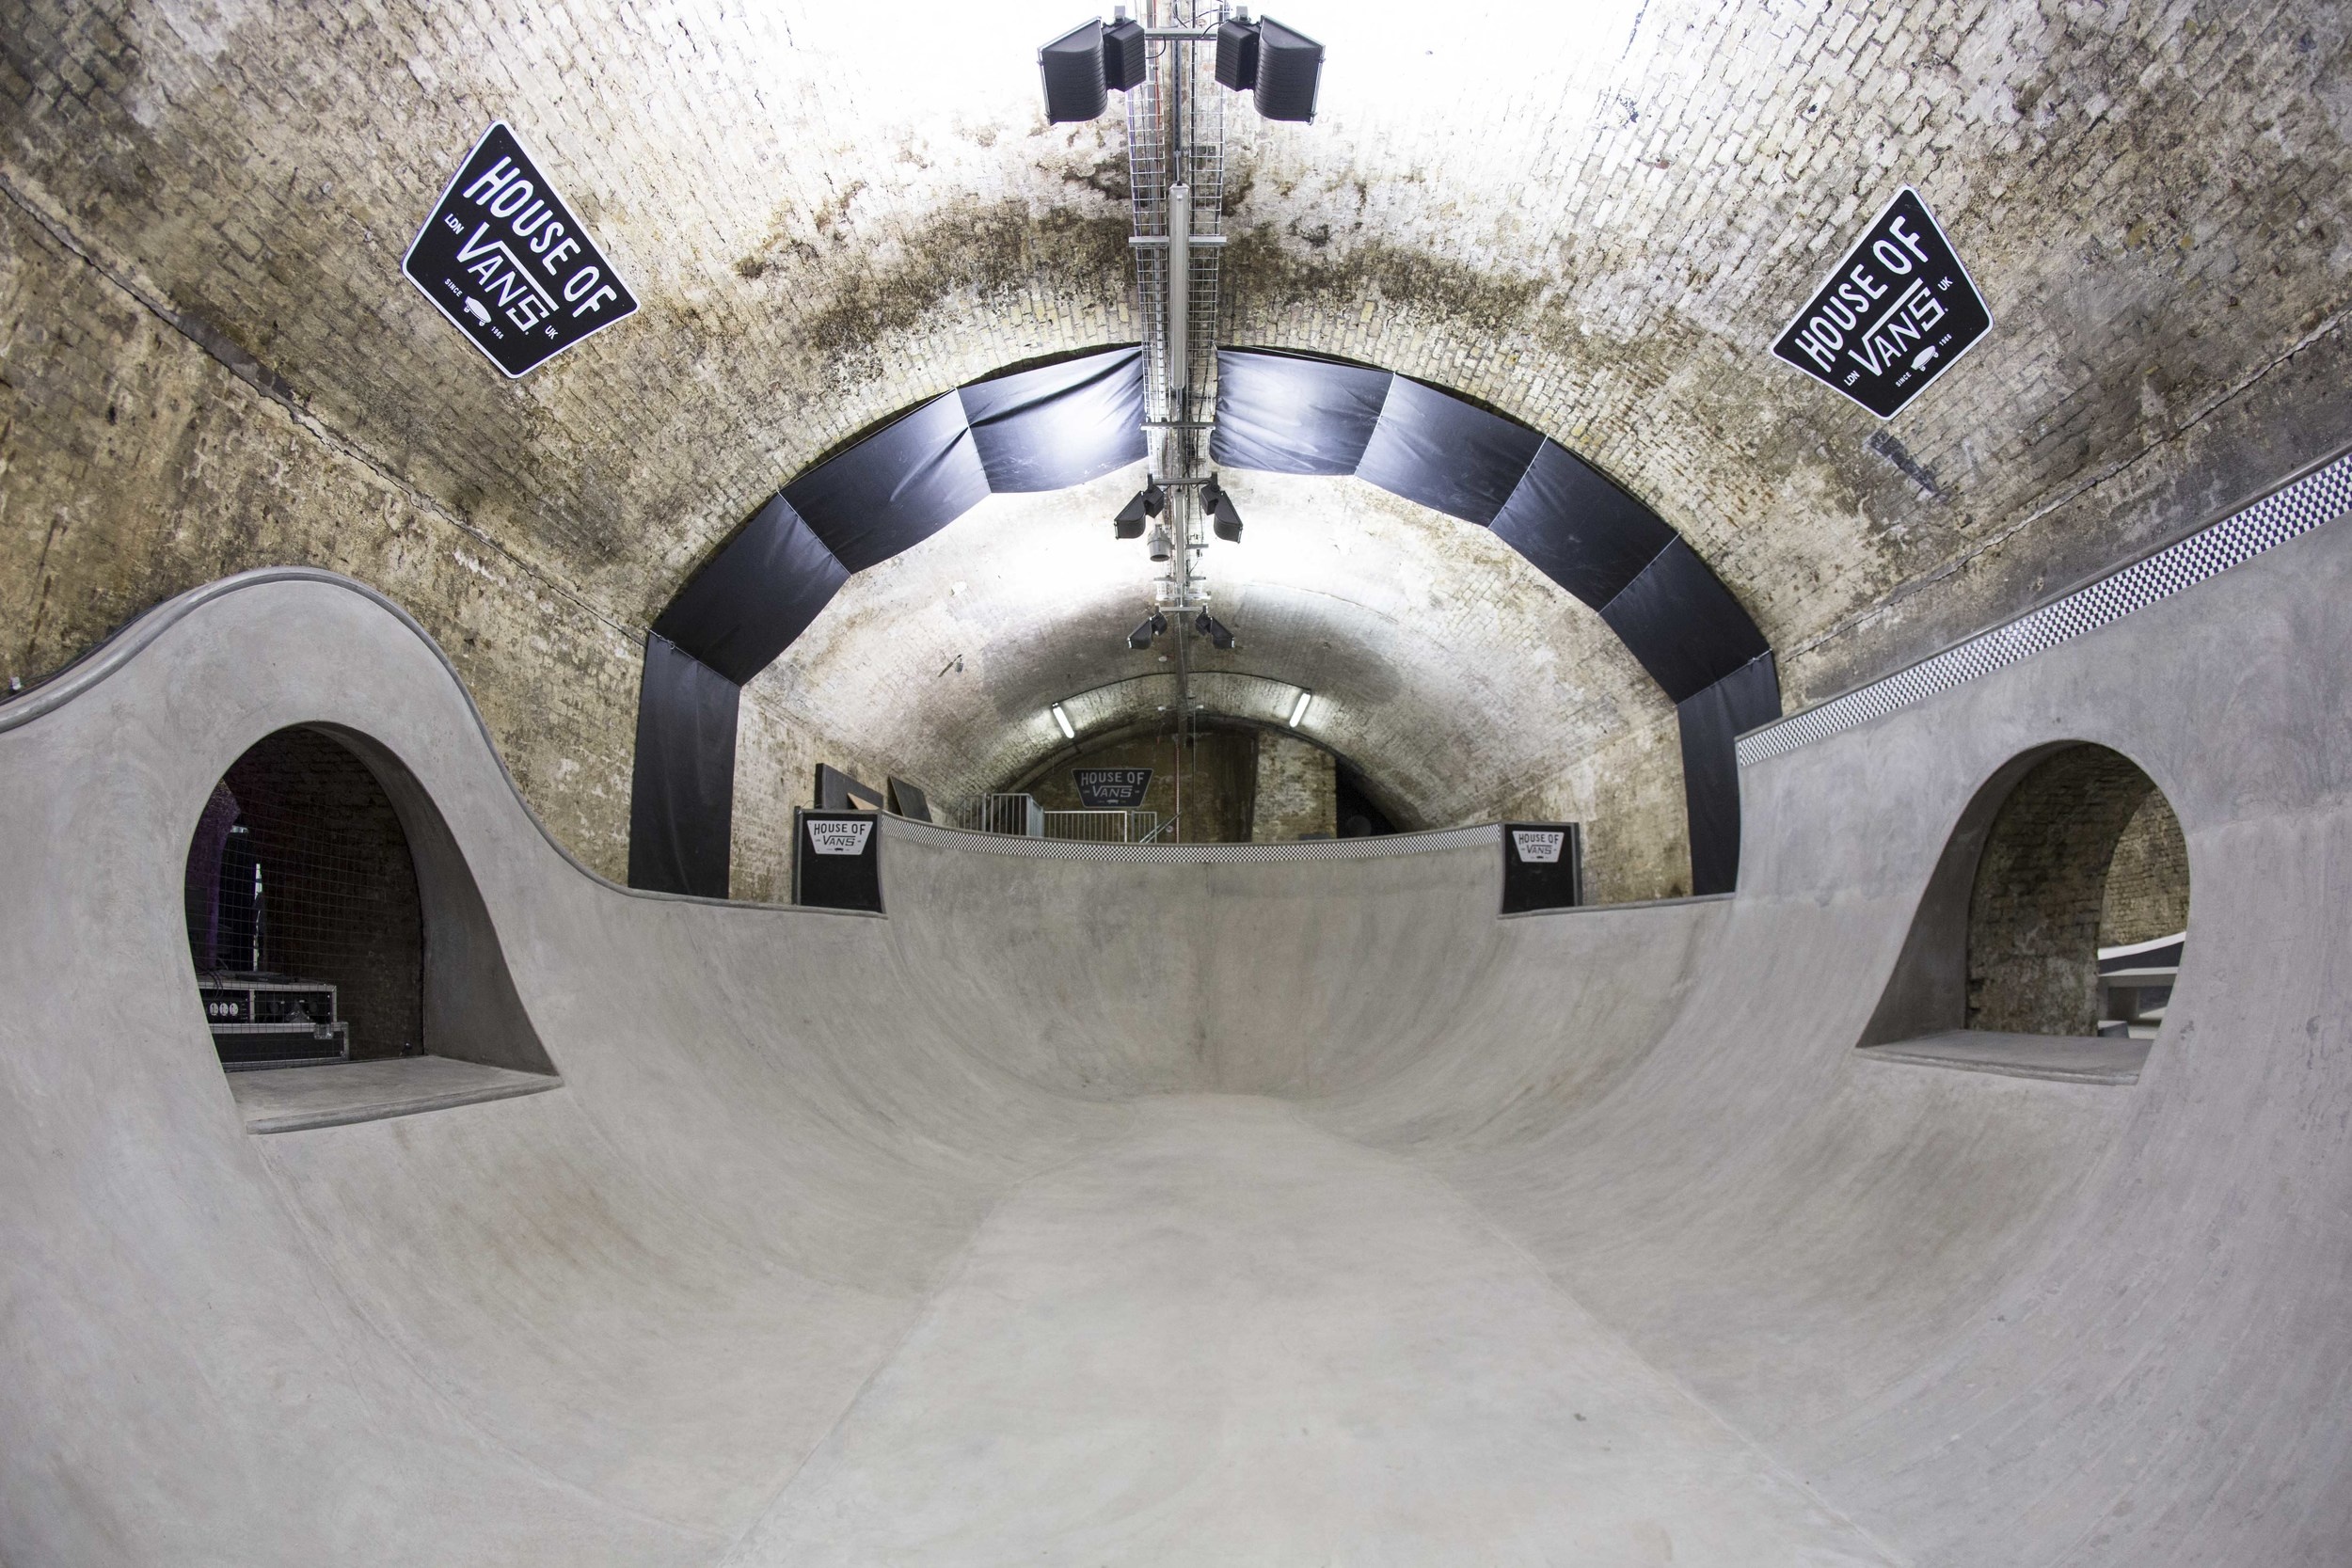 Tunnel 4/5 - Bowl & Street Course